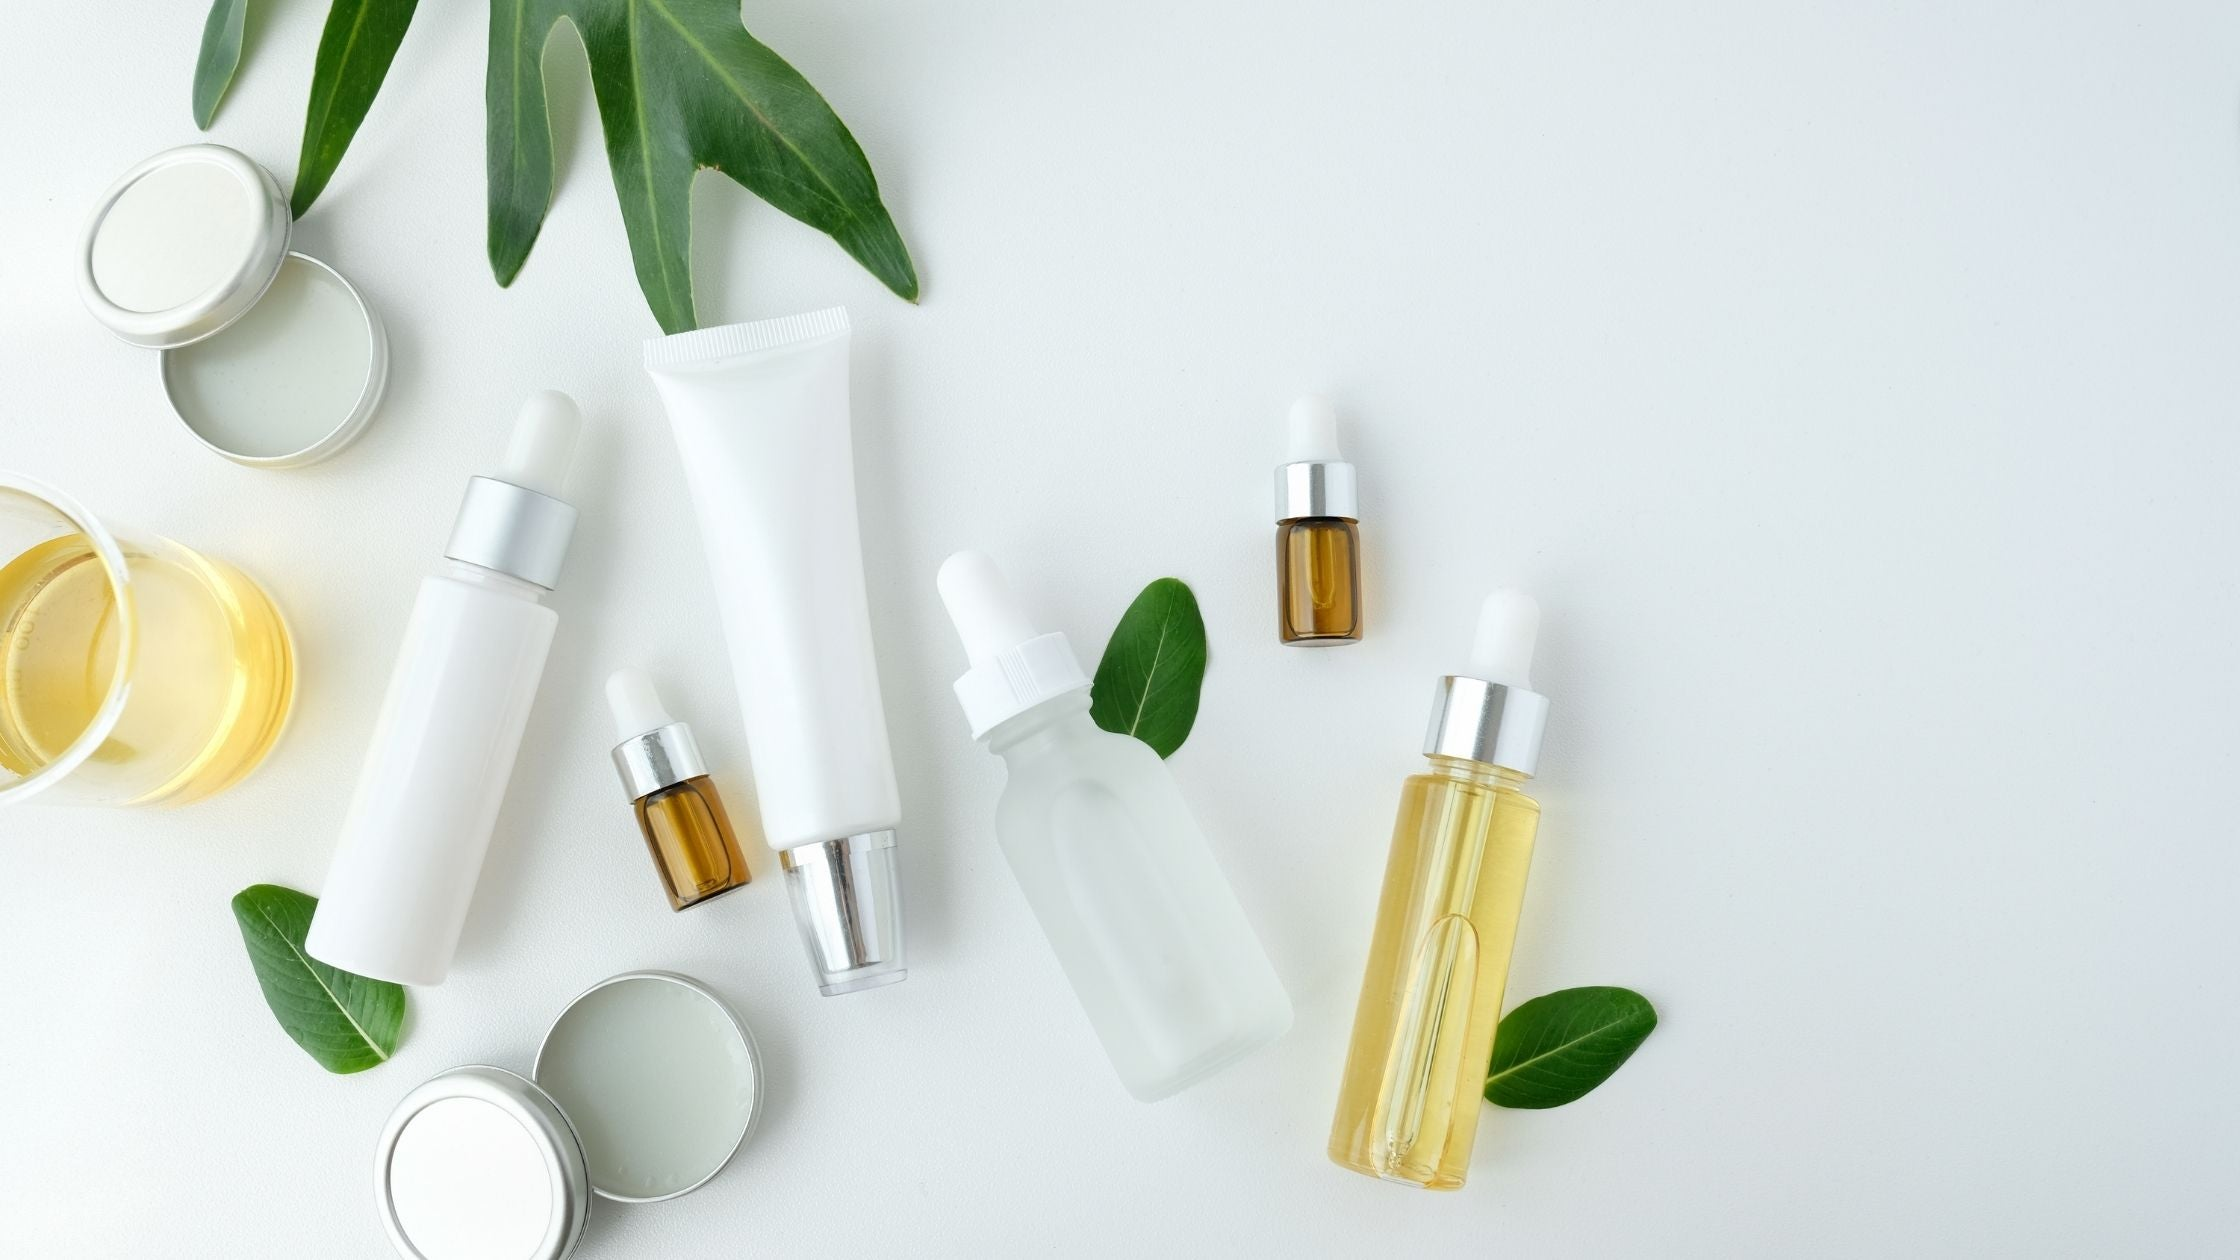 Dyes in Skincare Products